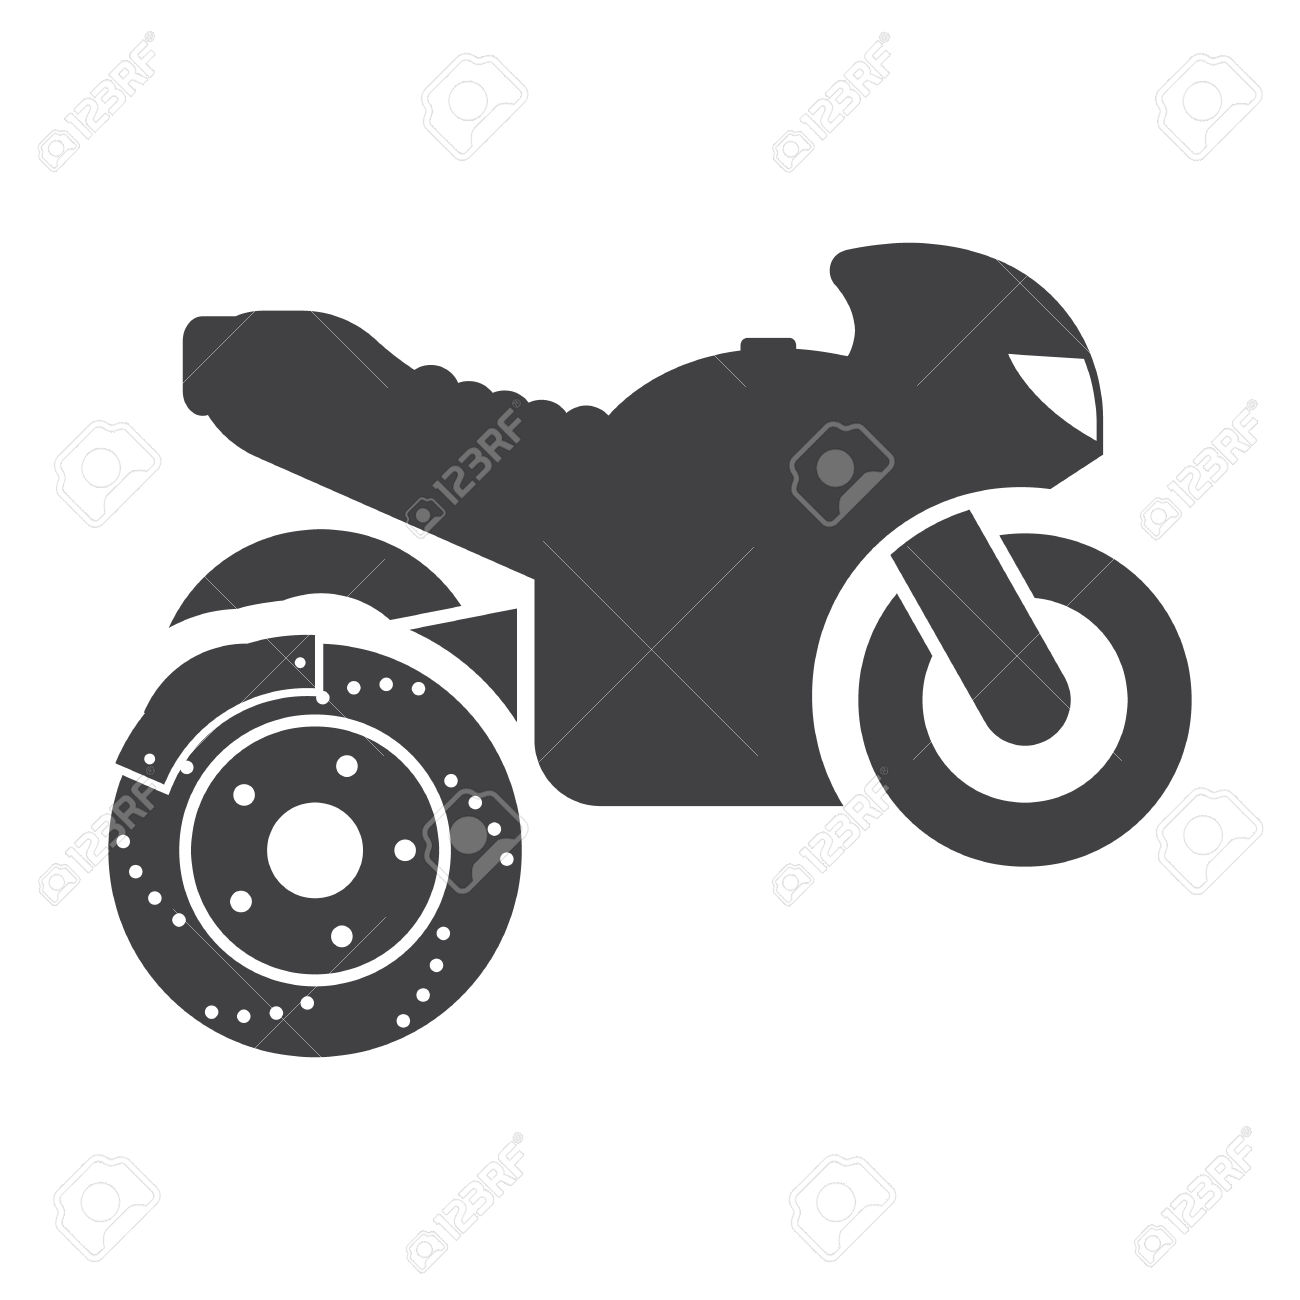 217 Brake Pads Stock Illustrations, Cliparts And Royalty Free.